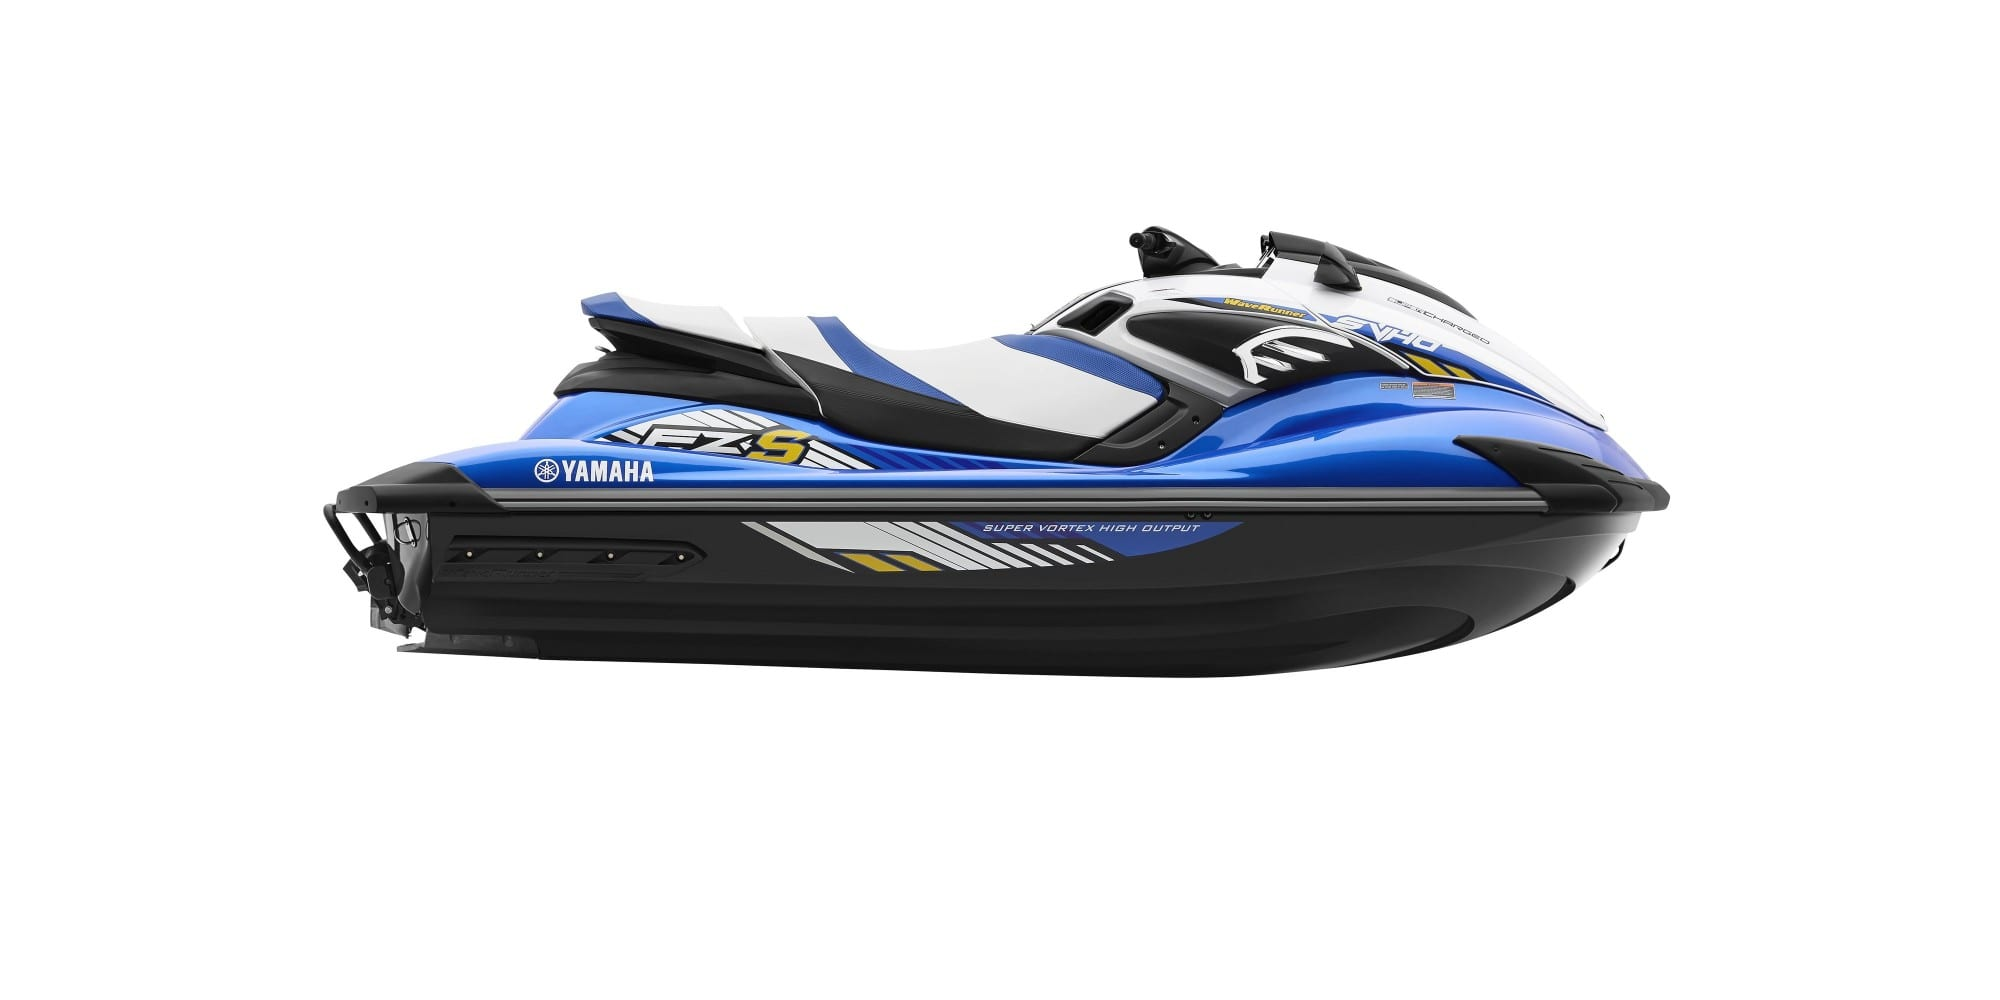 New Yamaha Waverunner Fzr Svho For Sale